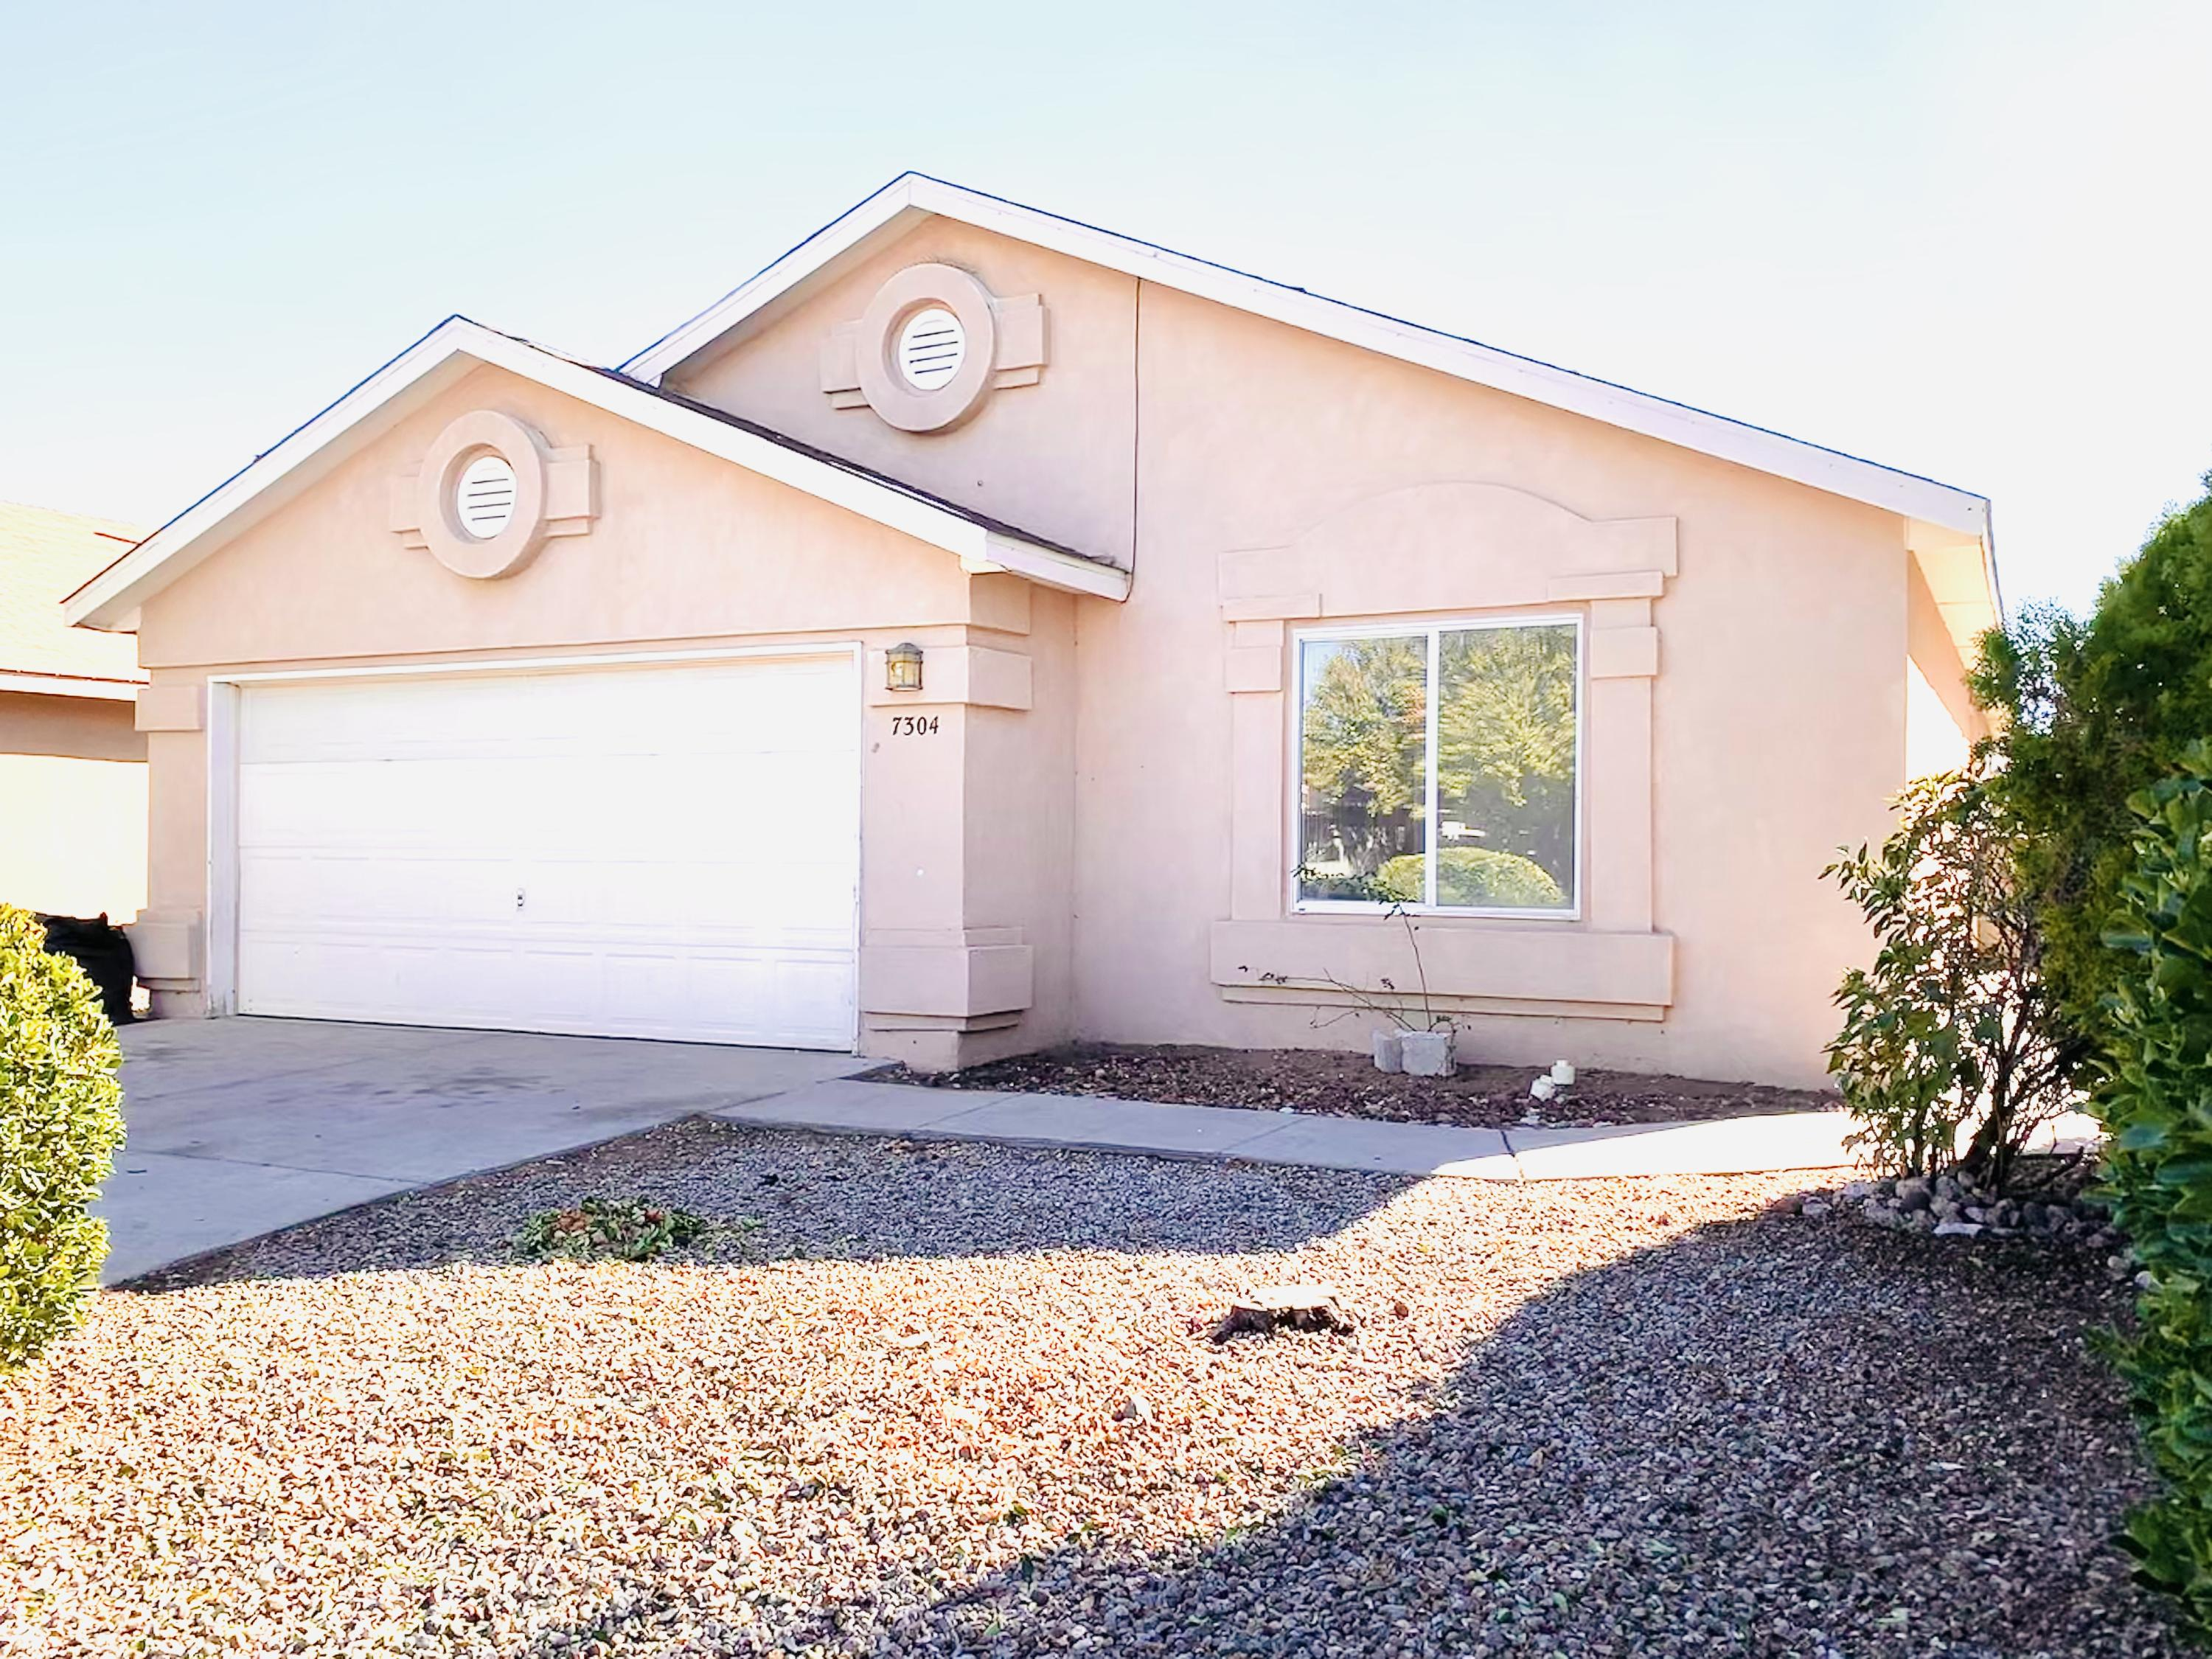 Turn key home with an open floor plan and vaulted ceilings!  This is a thought out floor plan with no wall to wall bedrooms and thought out storage space.  Make this home yours today.  More pics coming soon!